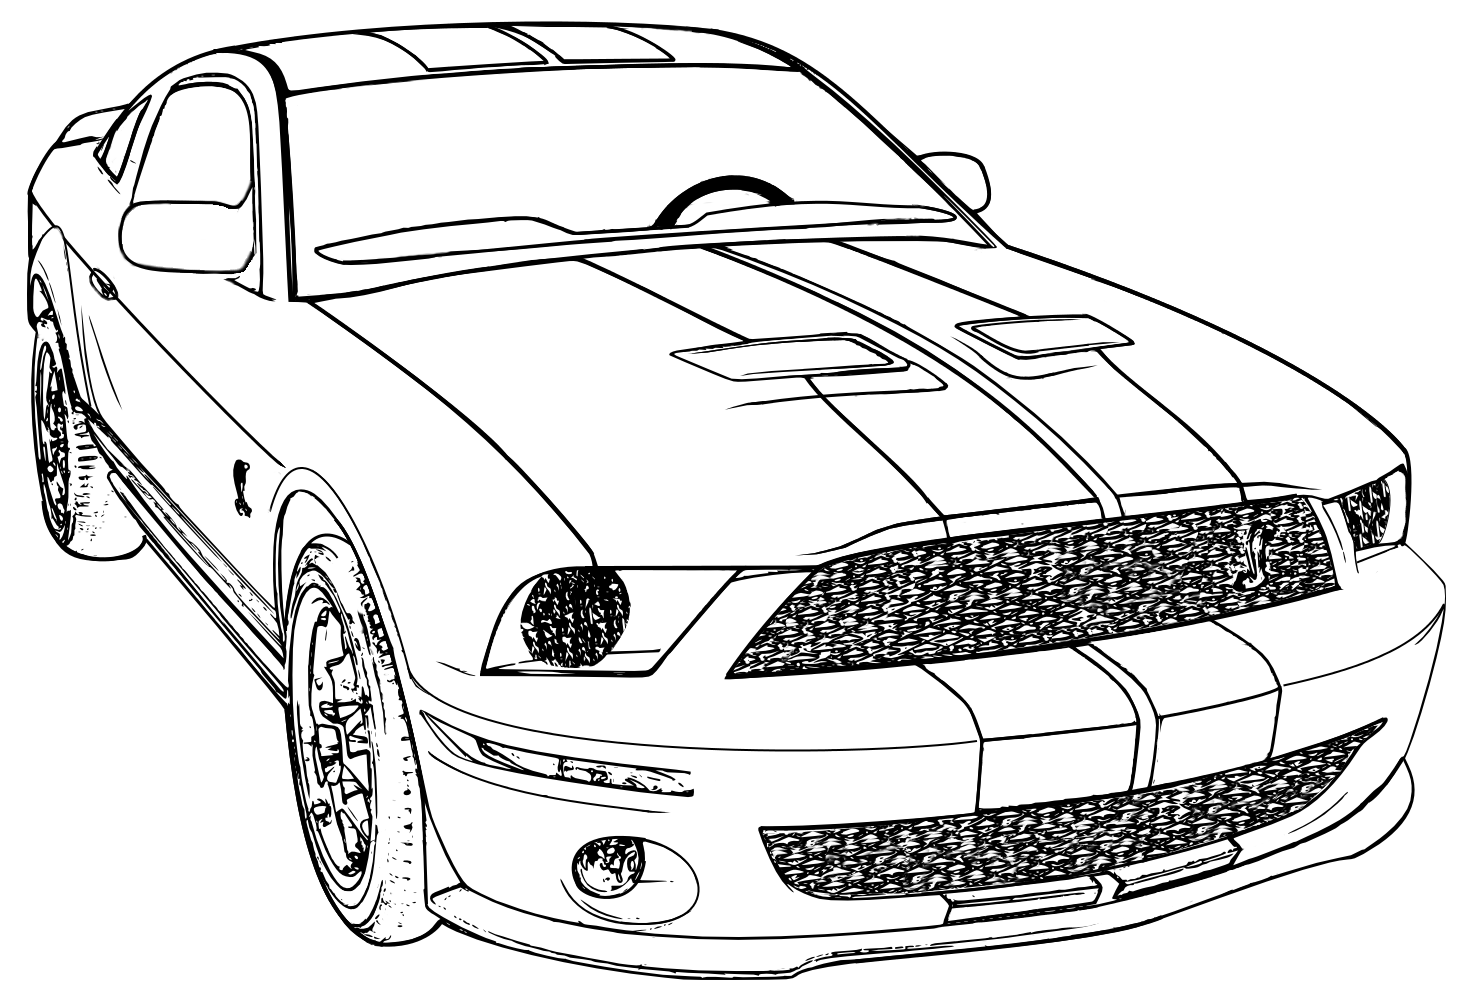 Printable coloring pages car - Printable Mustang Car Car Coloring Page Ford Mustang